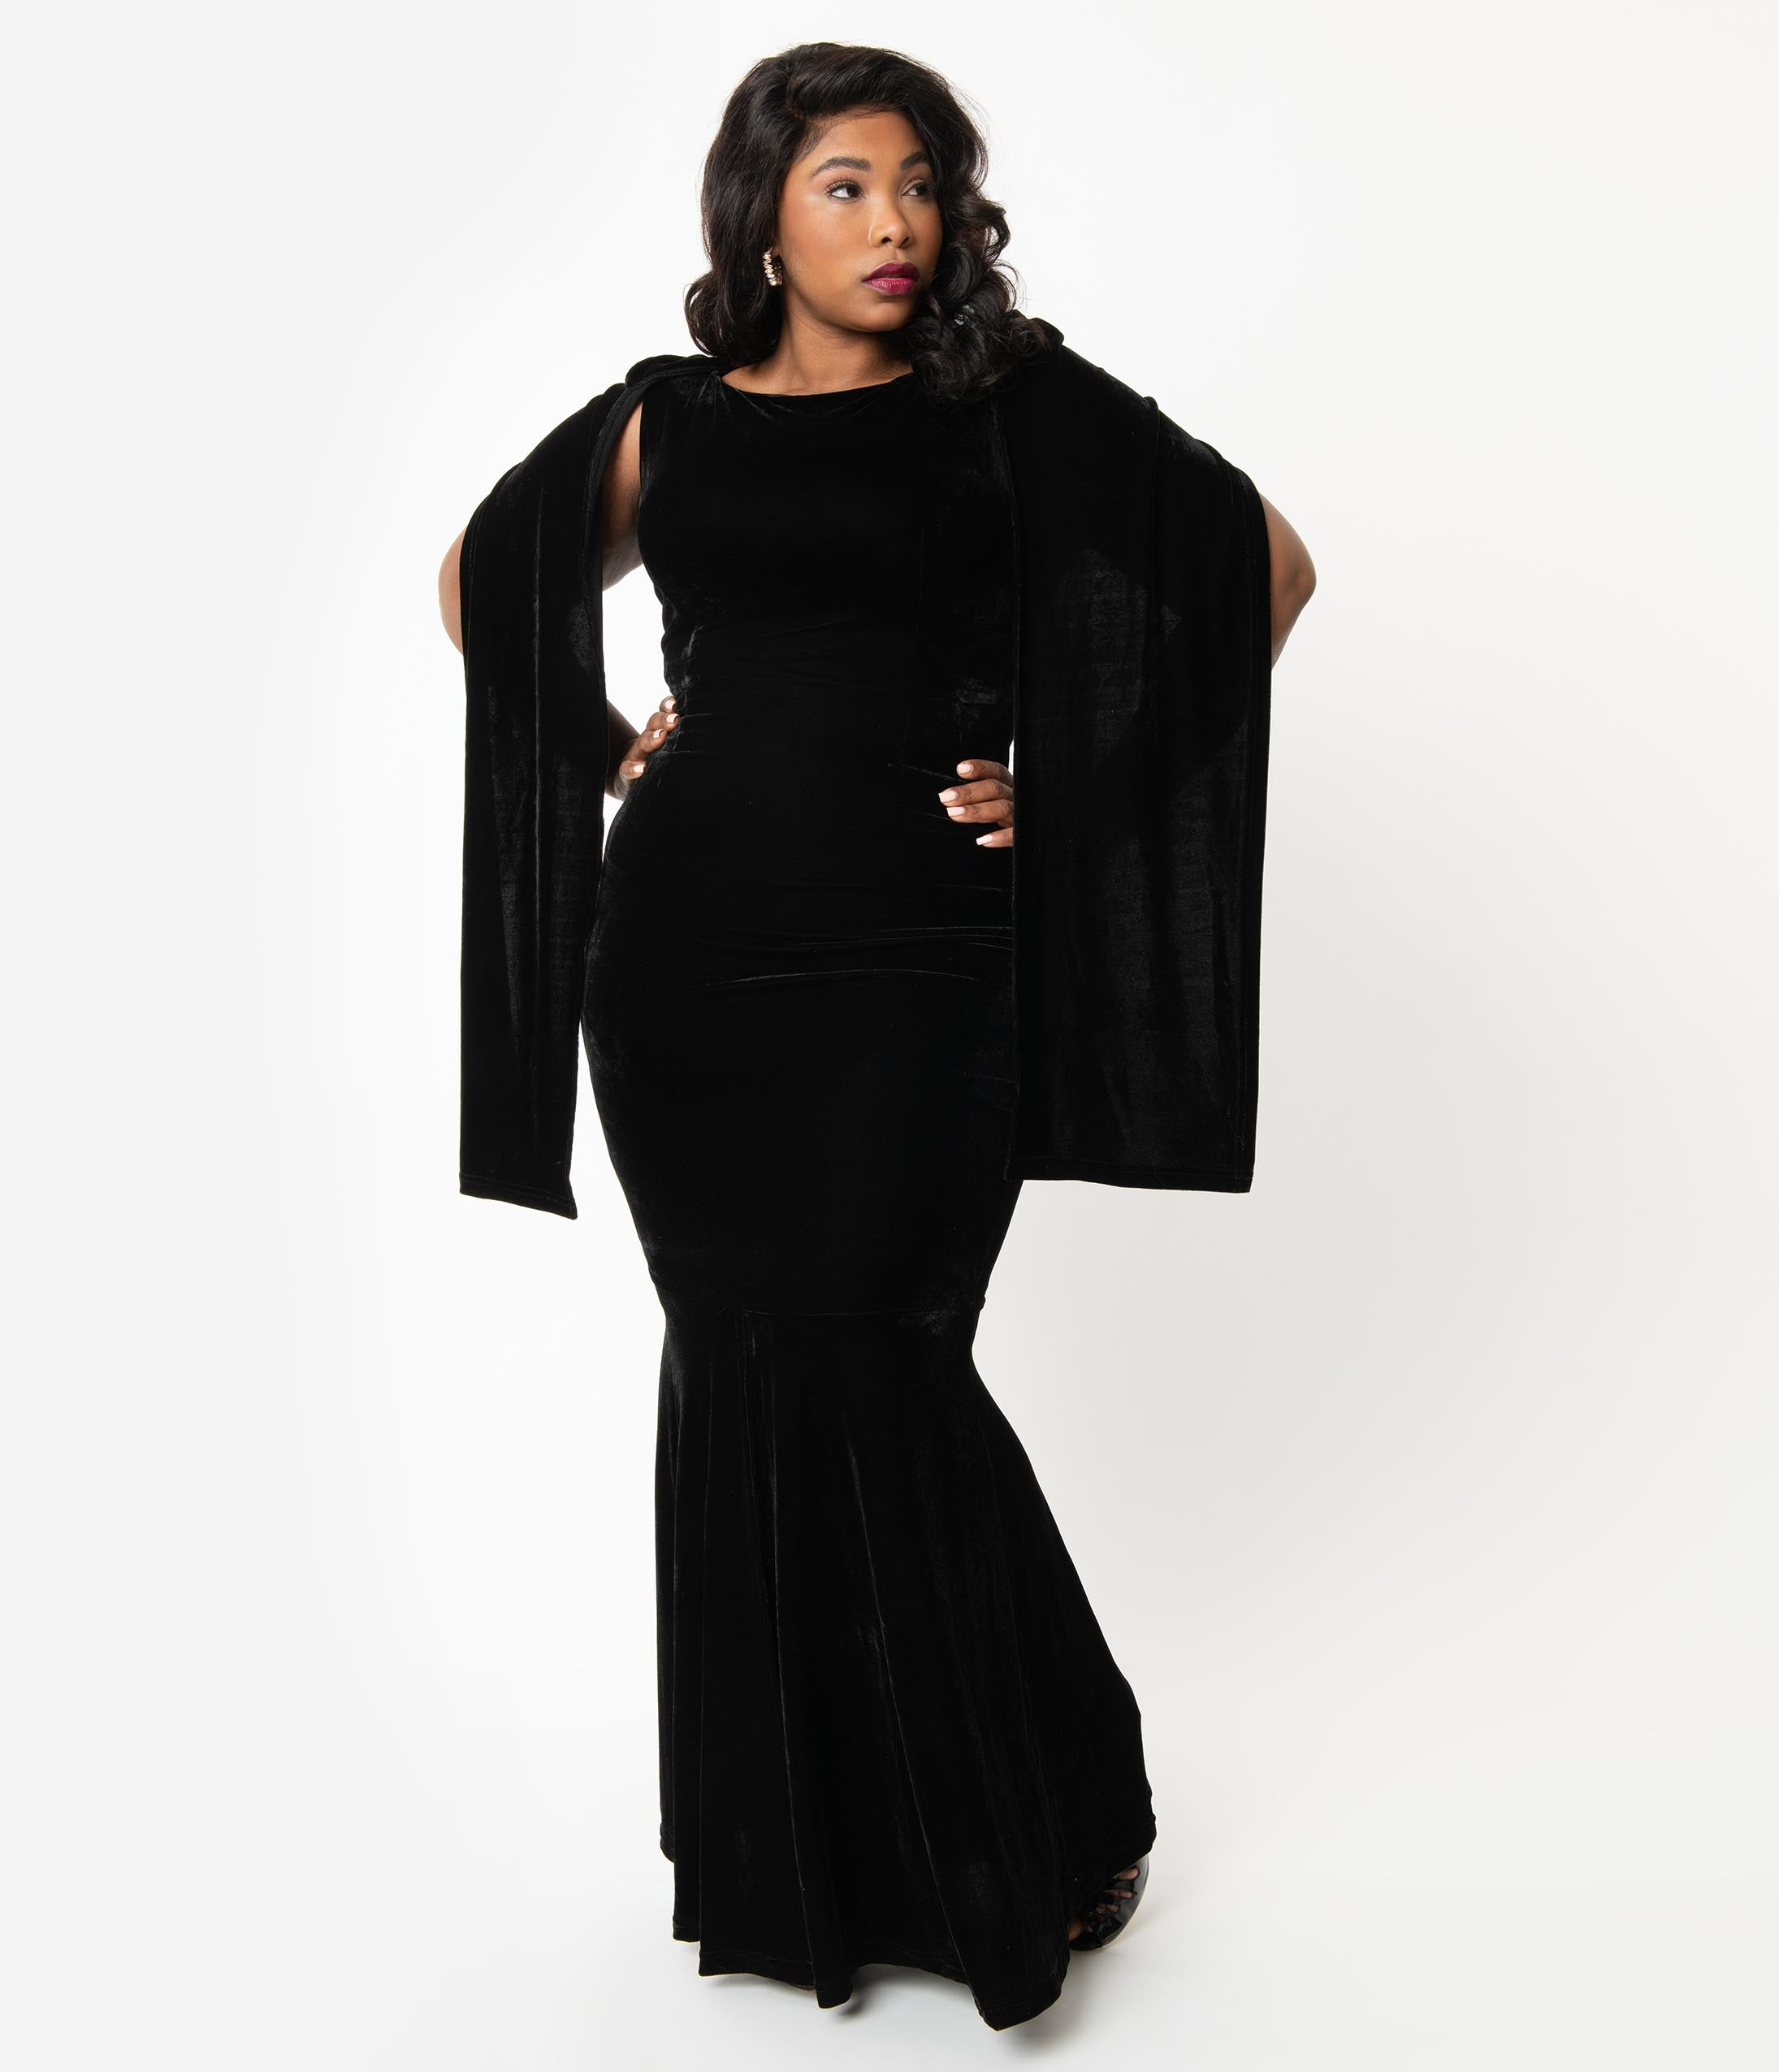 60s 70s Plus Size Dresses, Clothing, Costumes Plus Size Vintage Style Black Velvet Nightshade Hooded Gown $174.00 AT vintagedancer.com